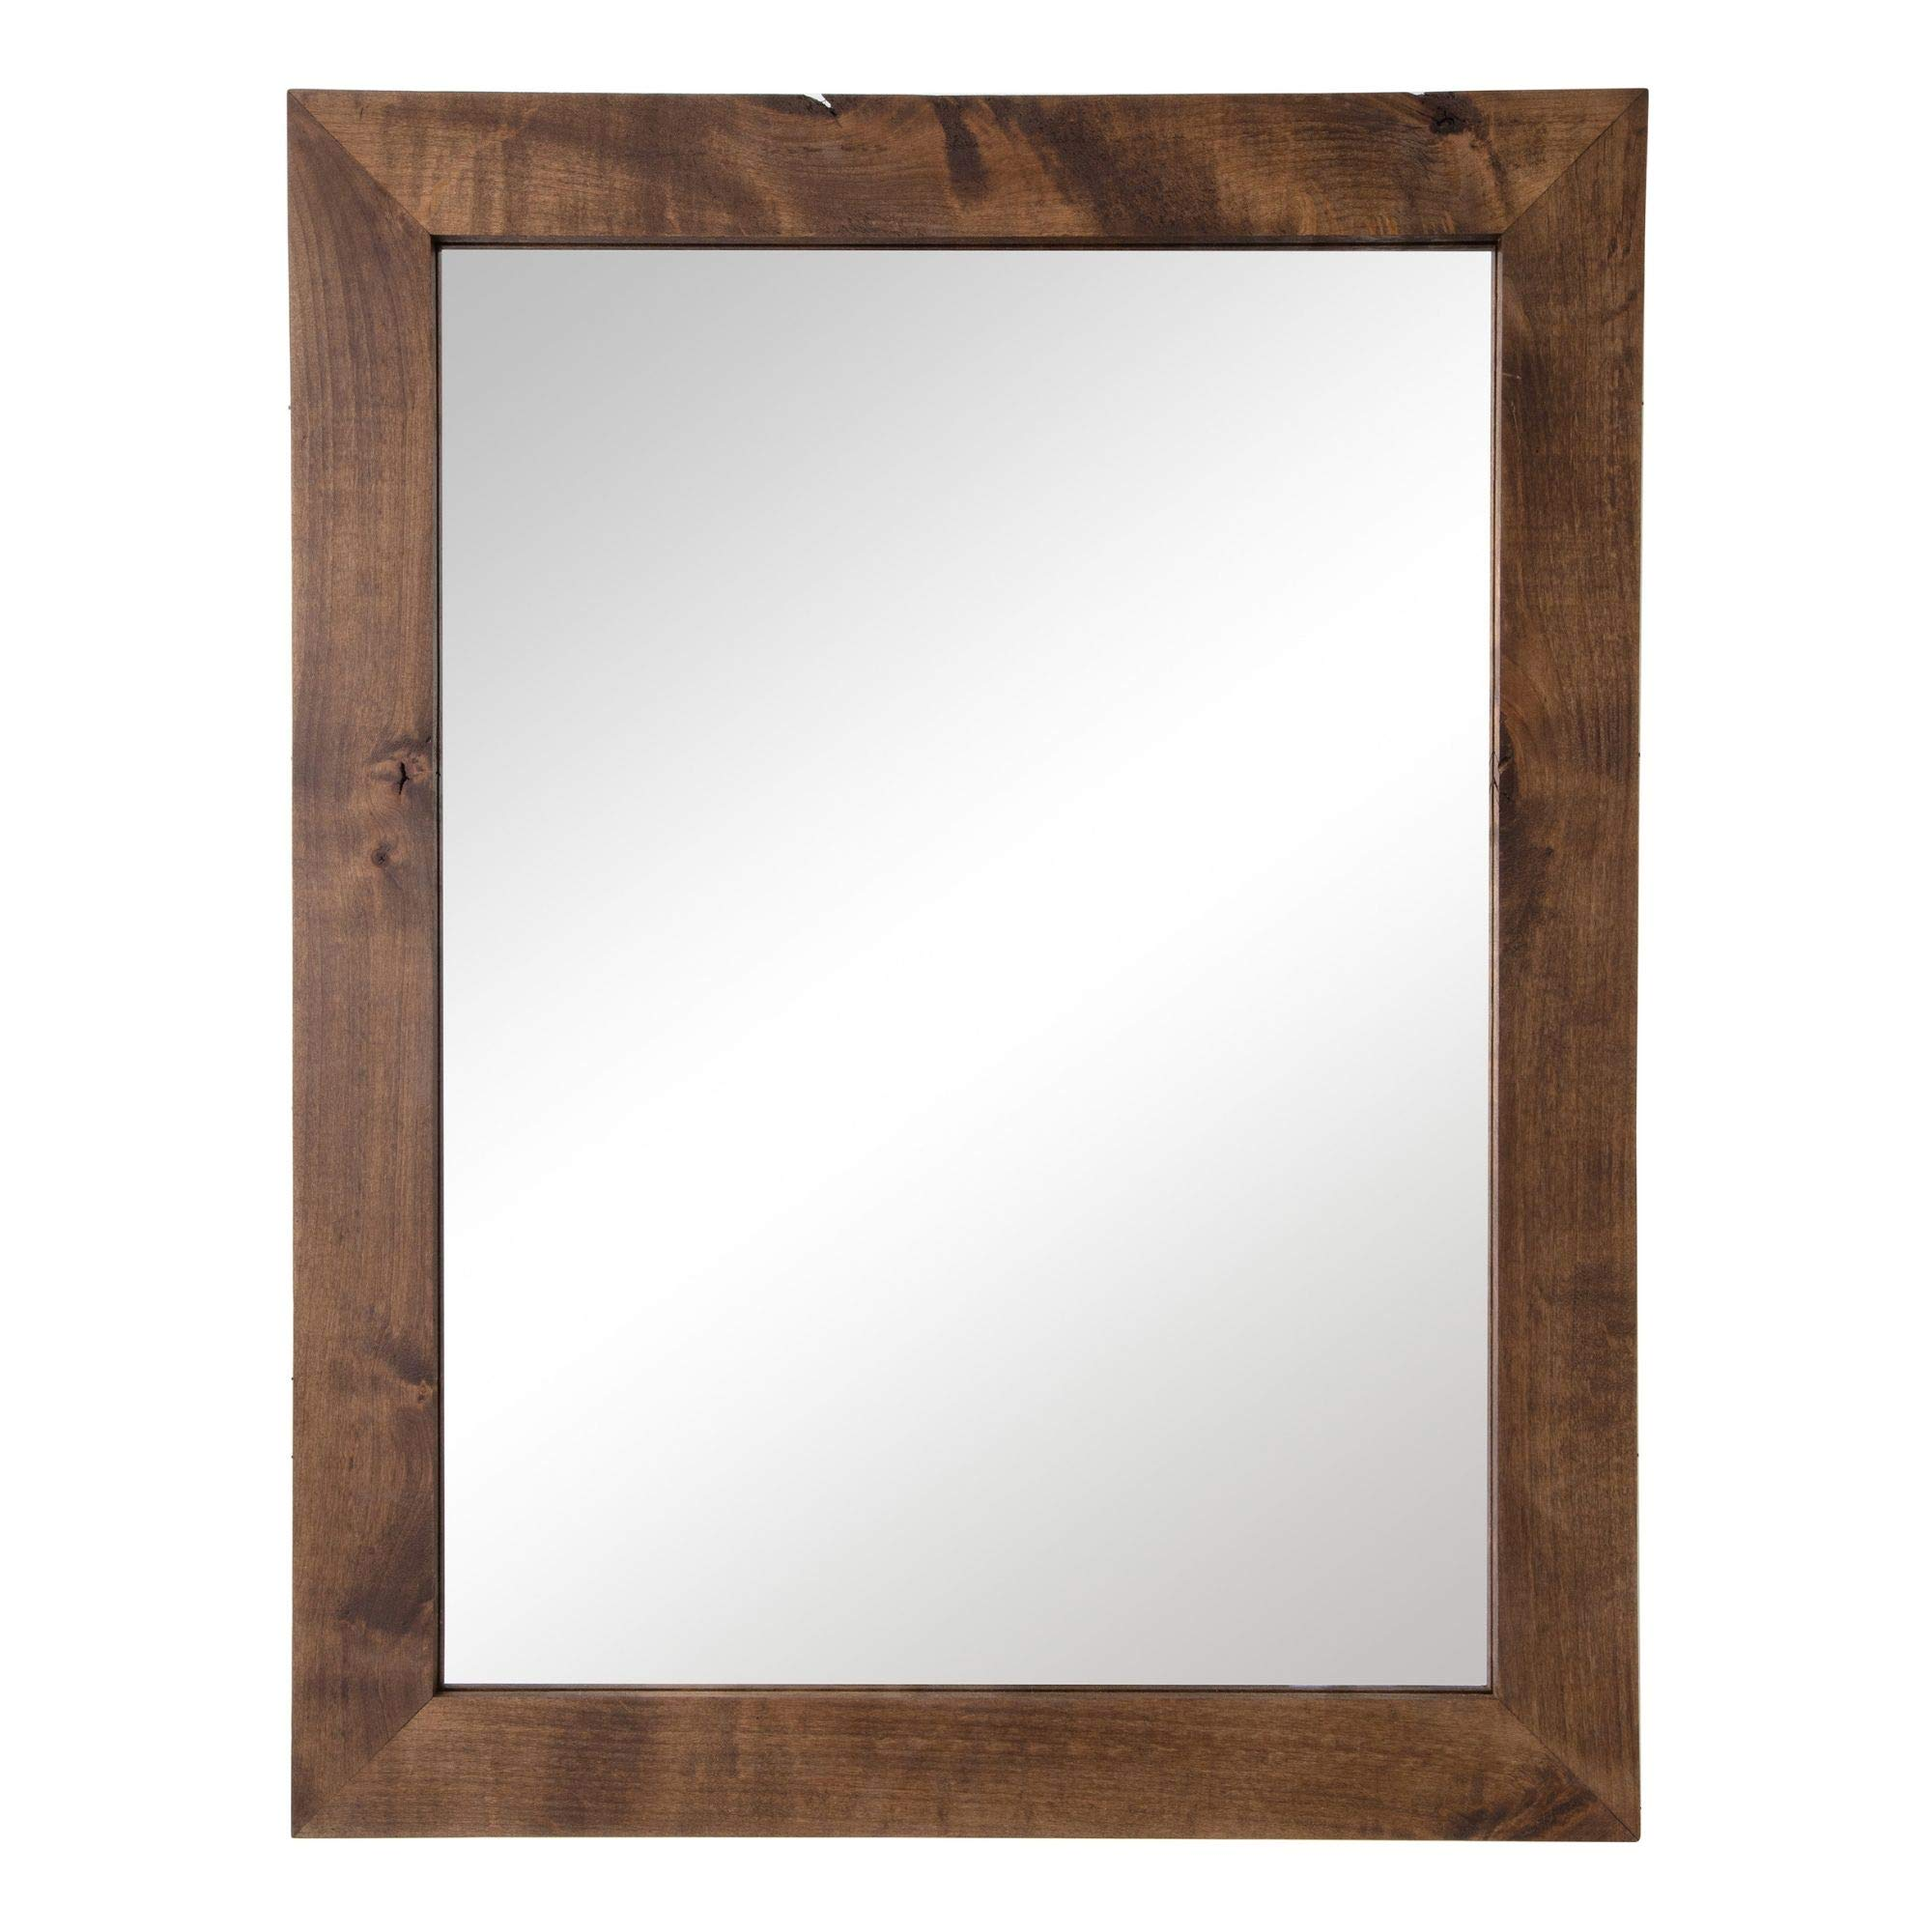 Drakestone Designs Modern Farmhouse Mirror for Bathroom Vanity, Wall-Mount, Rectangular Vertical Horizontal, Solid Wood Frame (Walnut Finish, 1) by Drakestone Designs